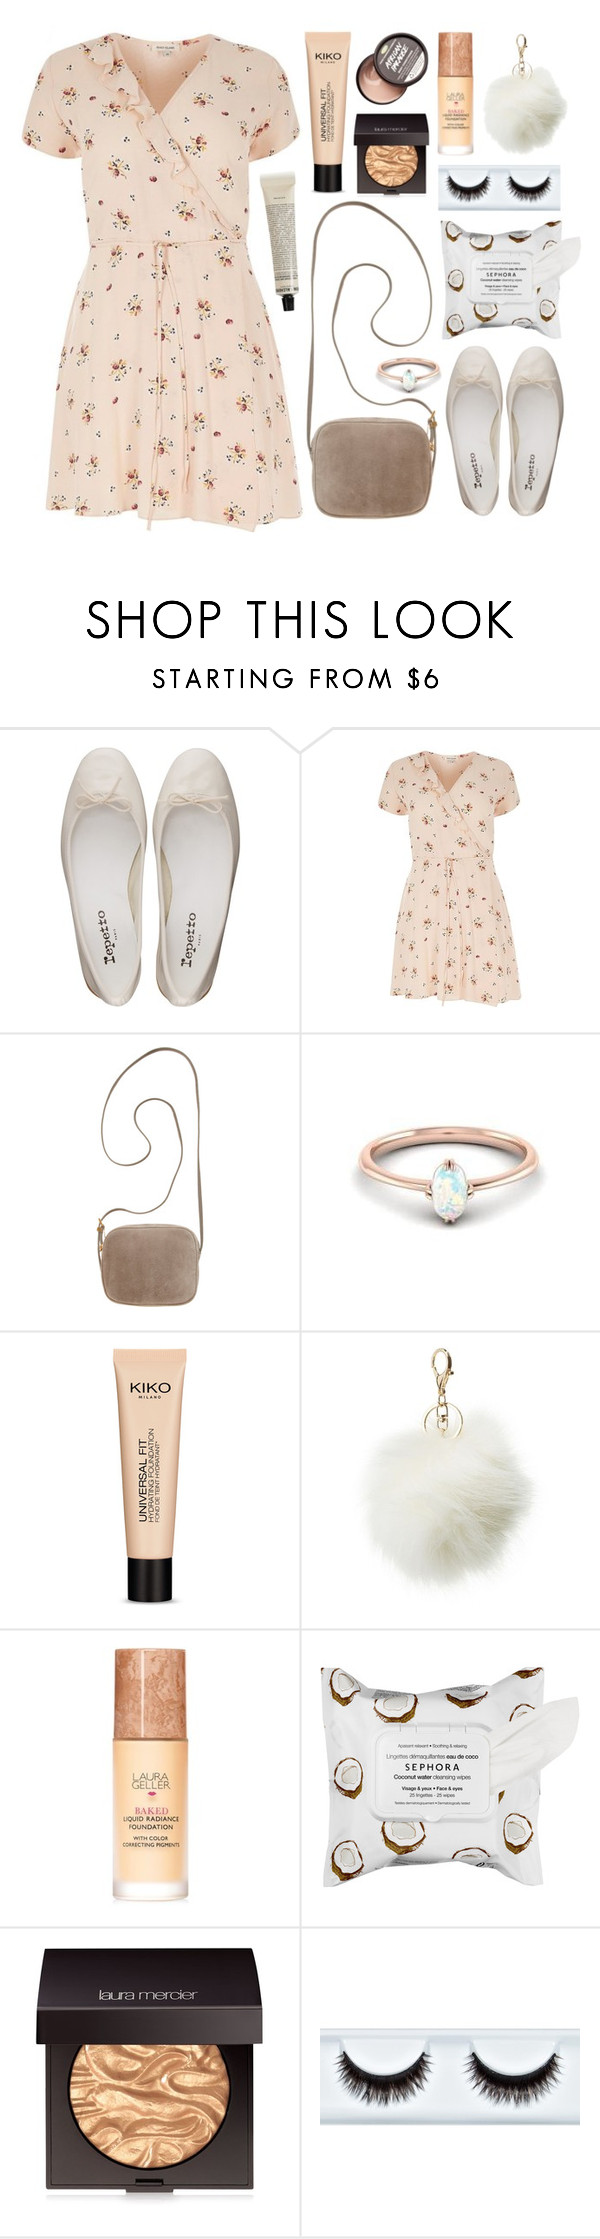 """African Paradise"" by sophiehackett ❤ liked on Polyvore featuring Repetto, River Island, The Row, Charlotte Russe, Laura Geller, Sephora Collection, Laura Mercier and Grown Alchemist"